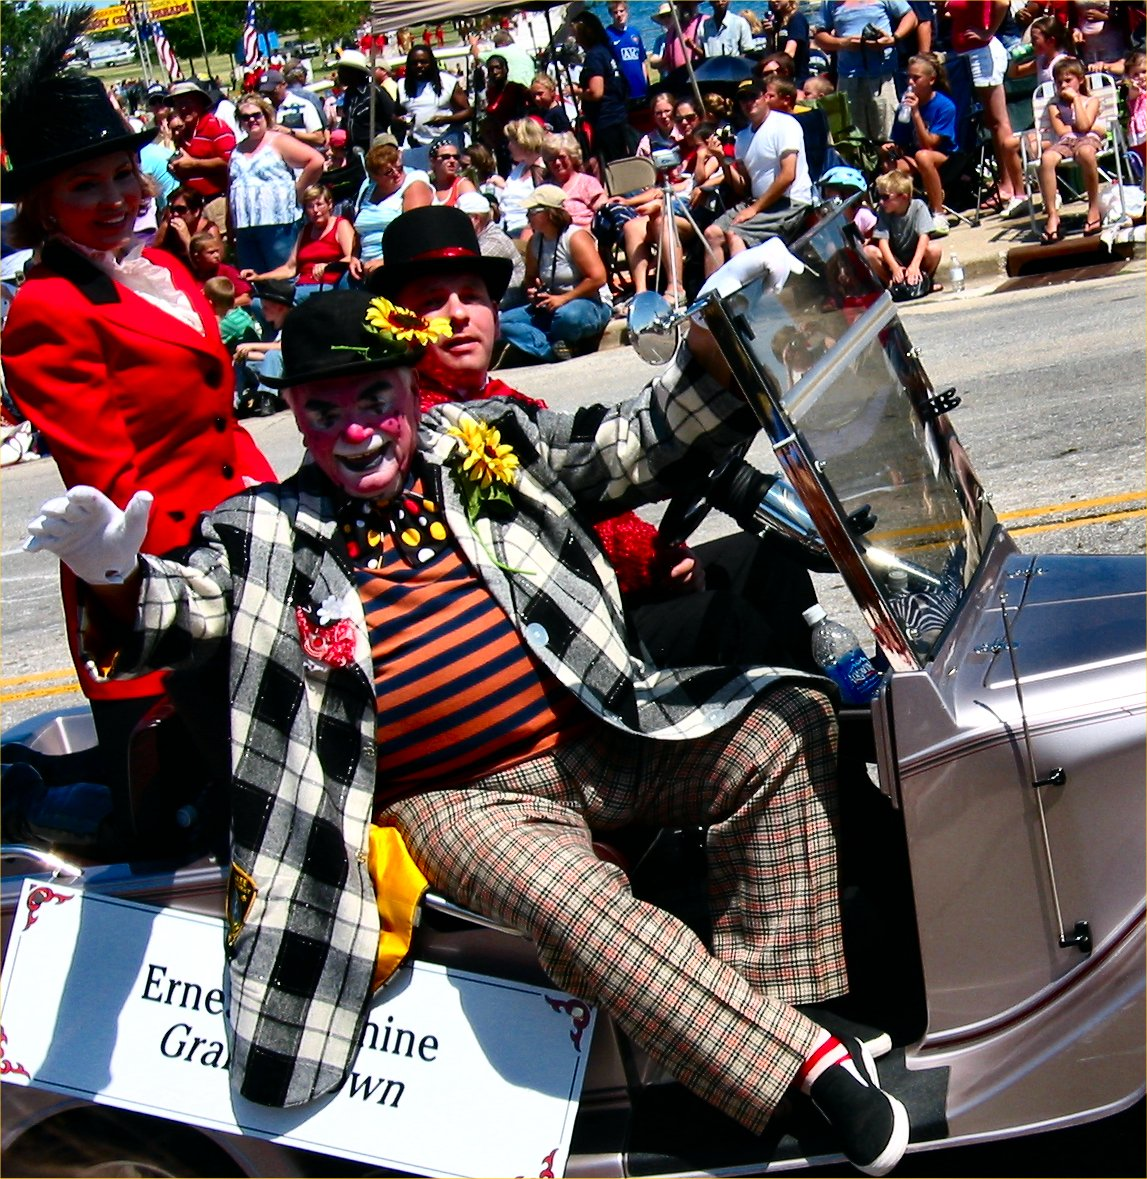 Great Circus Parade - Milwaukee, Wisconsin - July 12, 2009 - photos by Mike Fisk - soul-amp.com